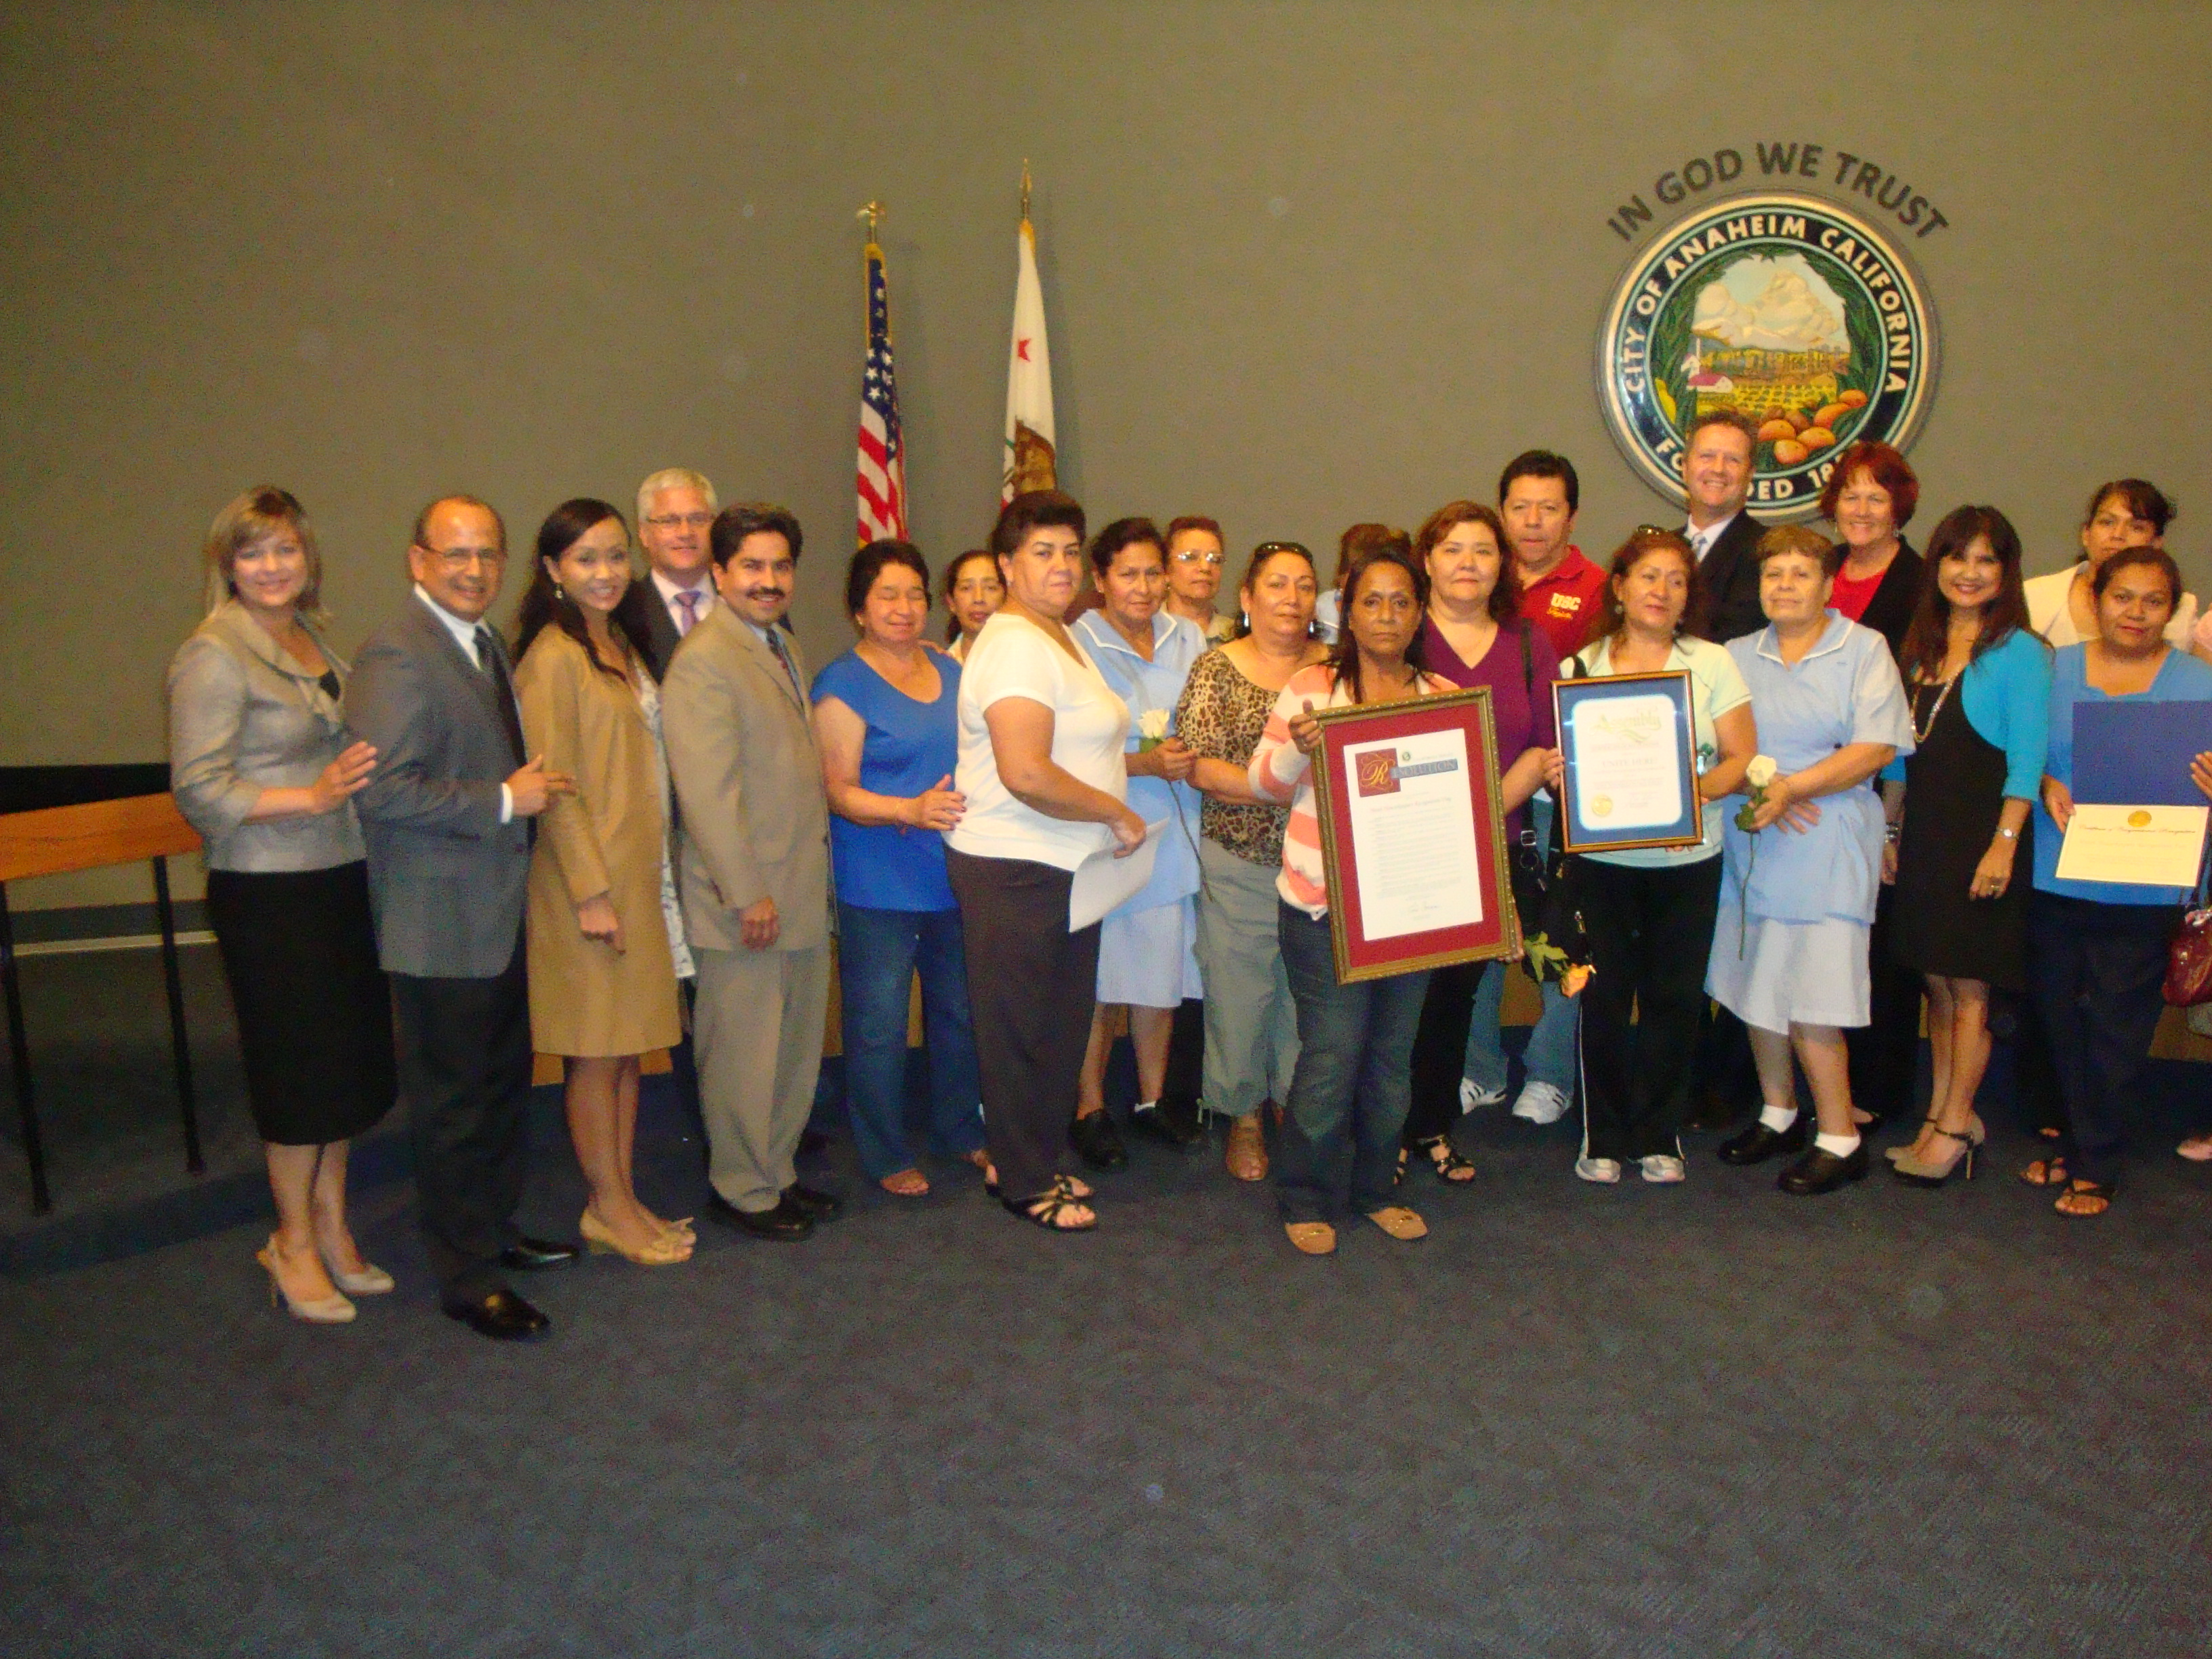 Large group photo with people holding awards at a city council meeting